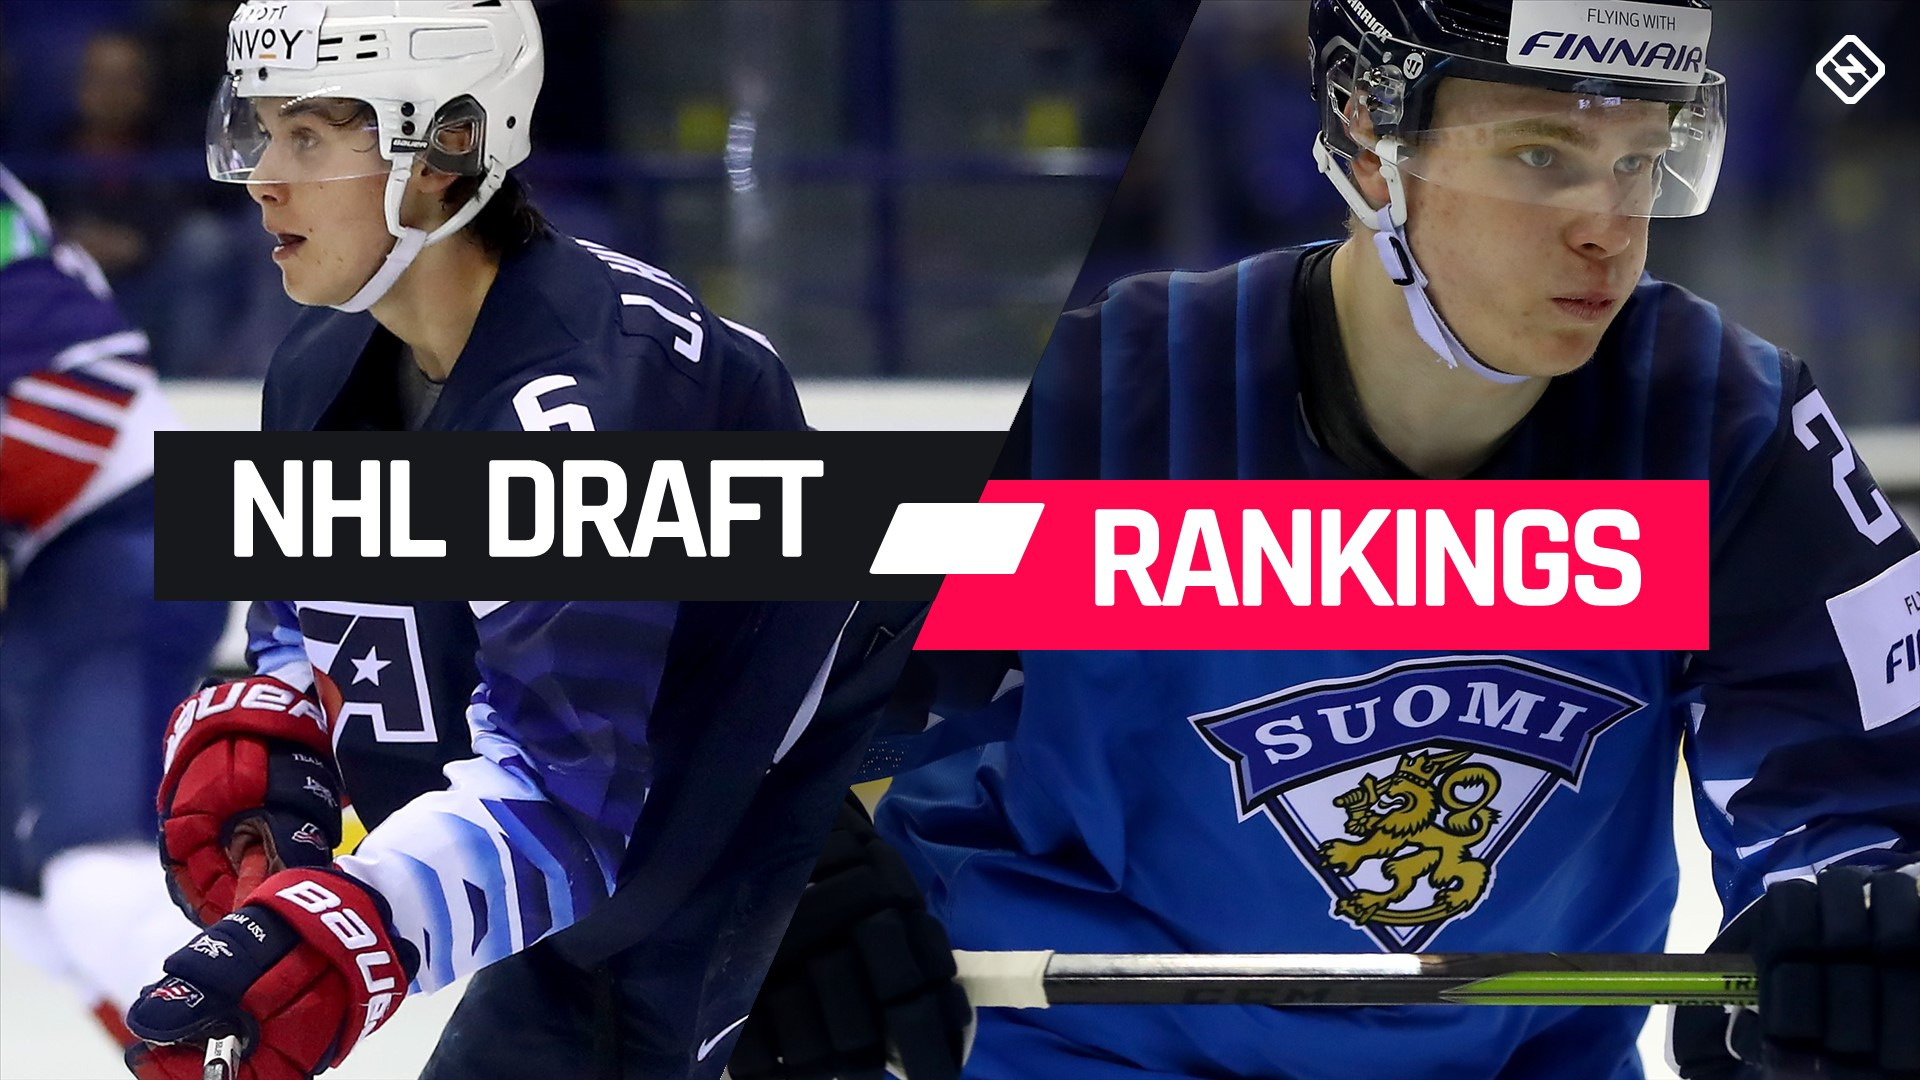 Nhl Draft Prospect Rankings Final Big Board Of Top 62 Players In